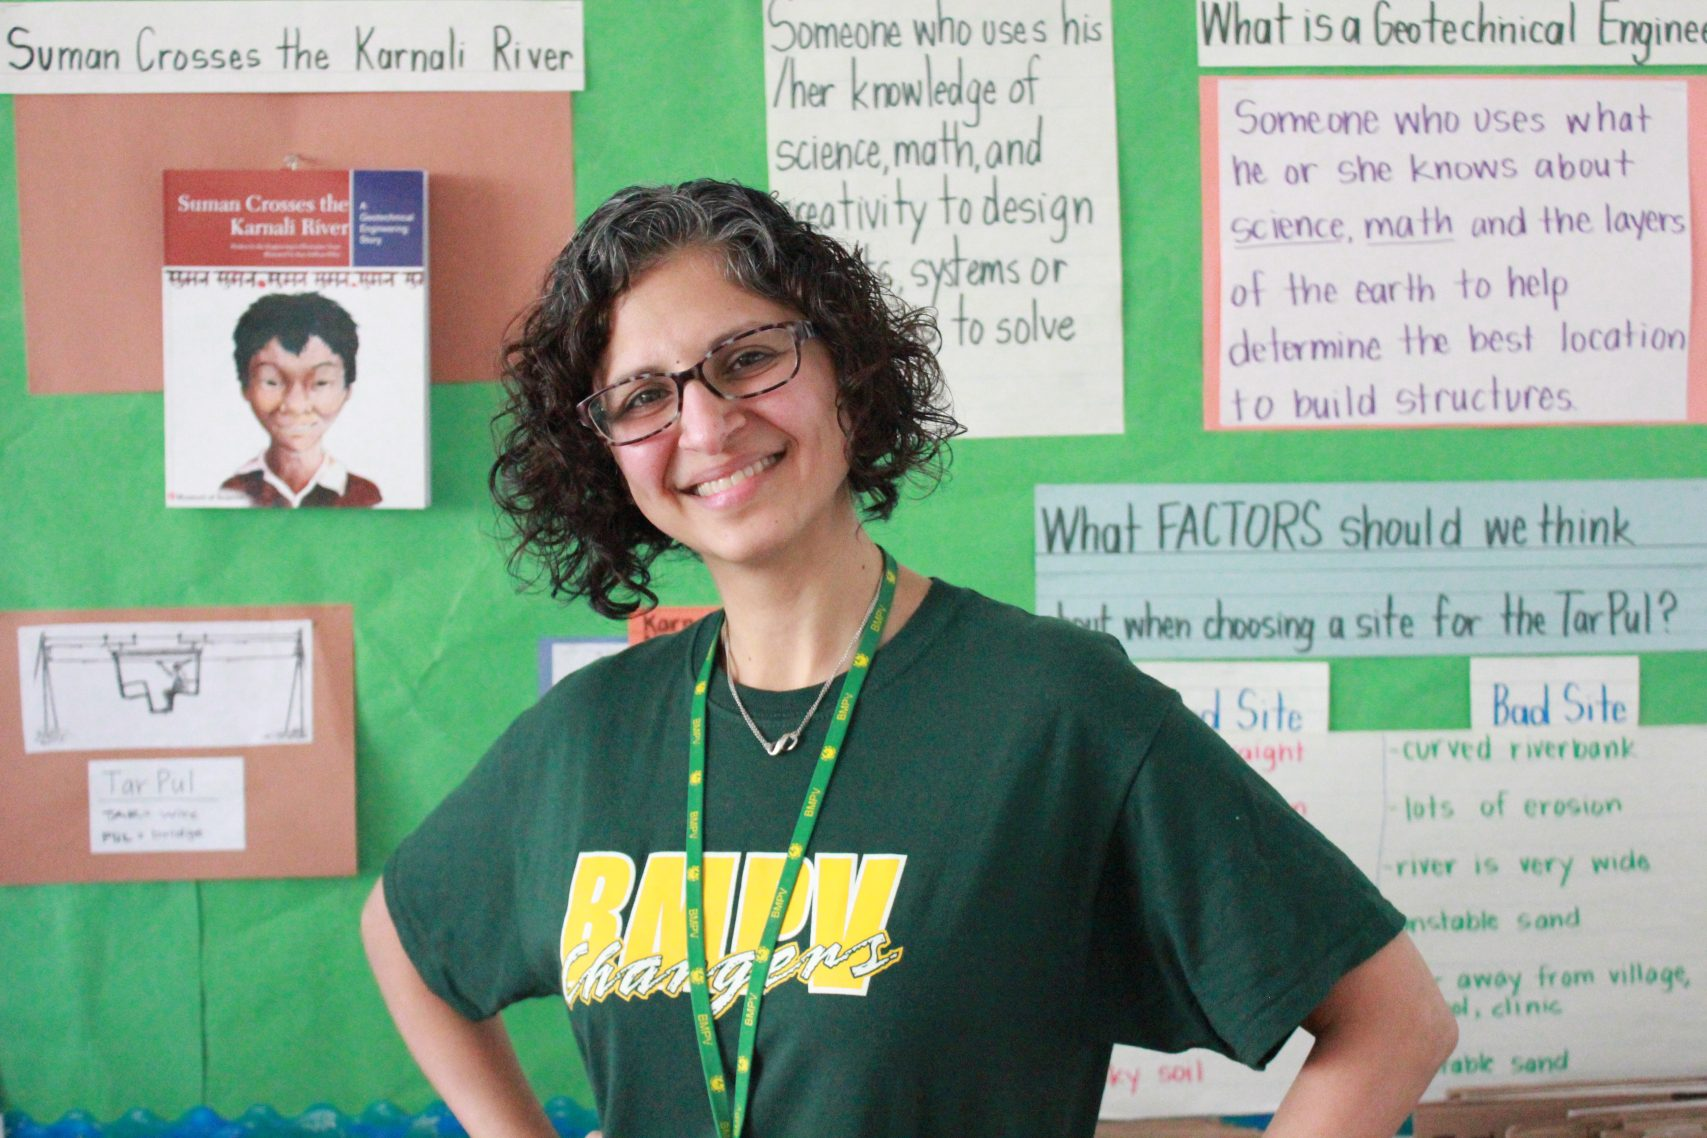 Sabina Malkani, EcoRise Teacher, Washington, D.C.